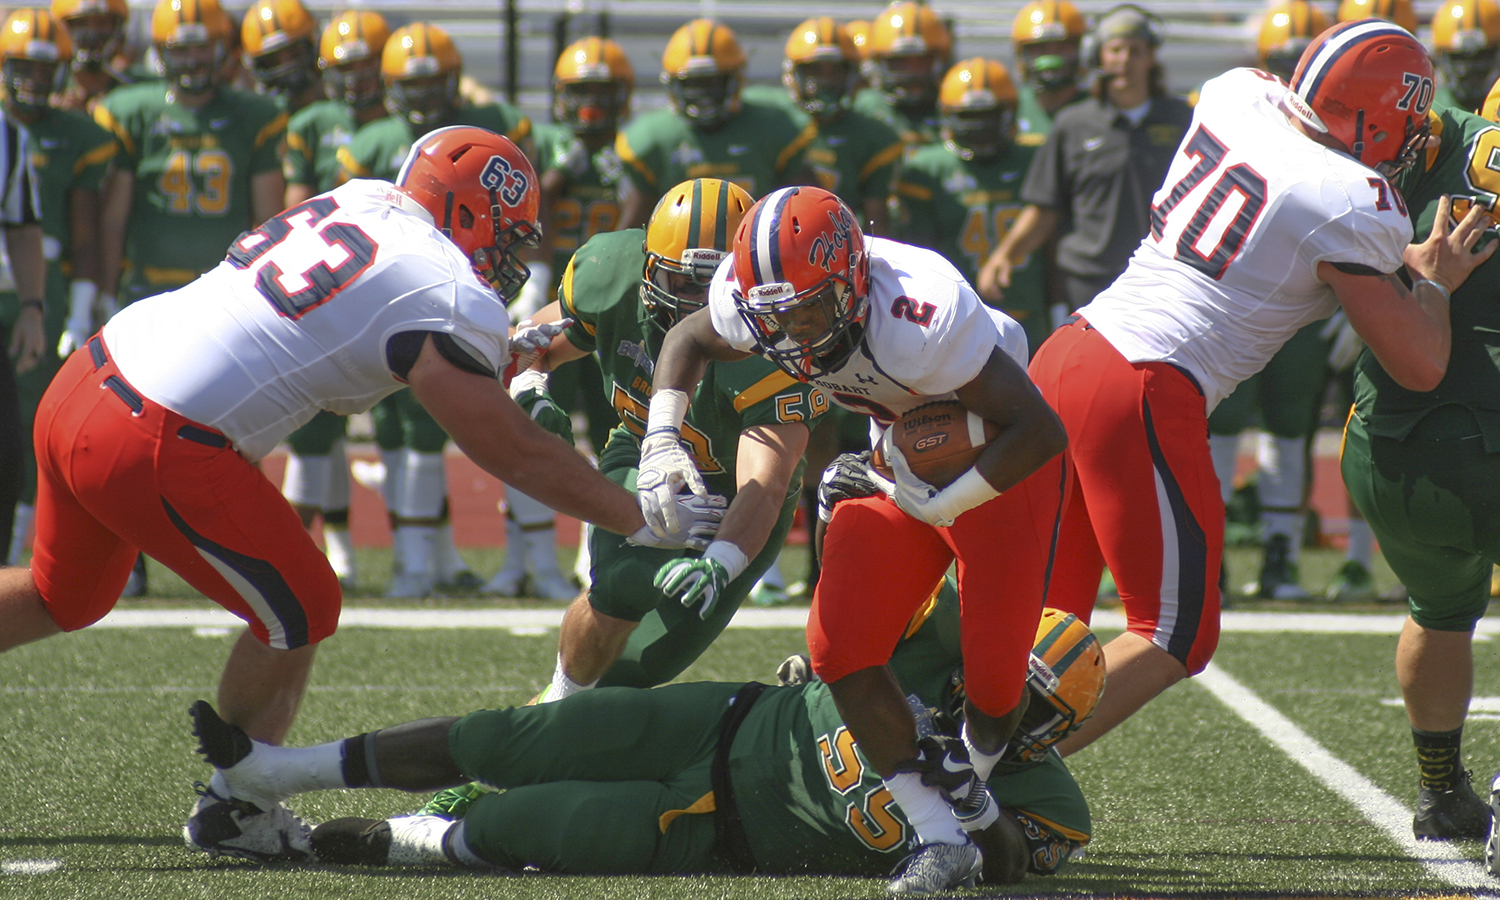 Tynard Barfield '19 breaks a tackle during the Statemen's 41-35 win over The College at Brockport.